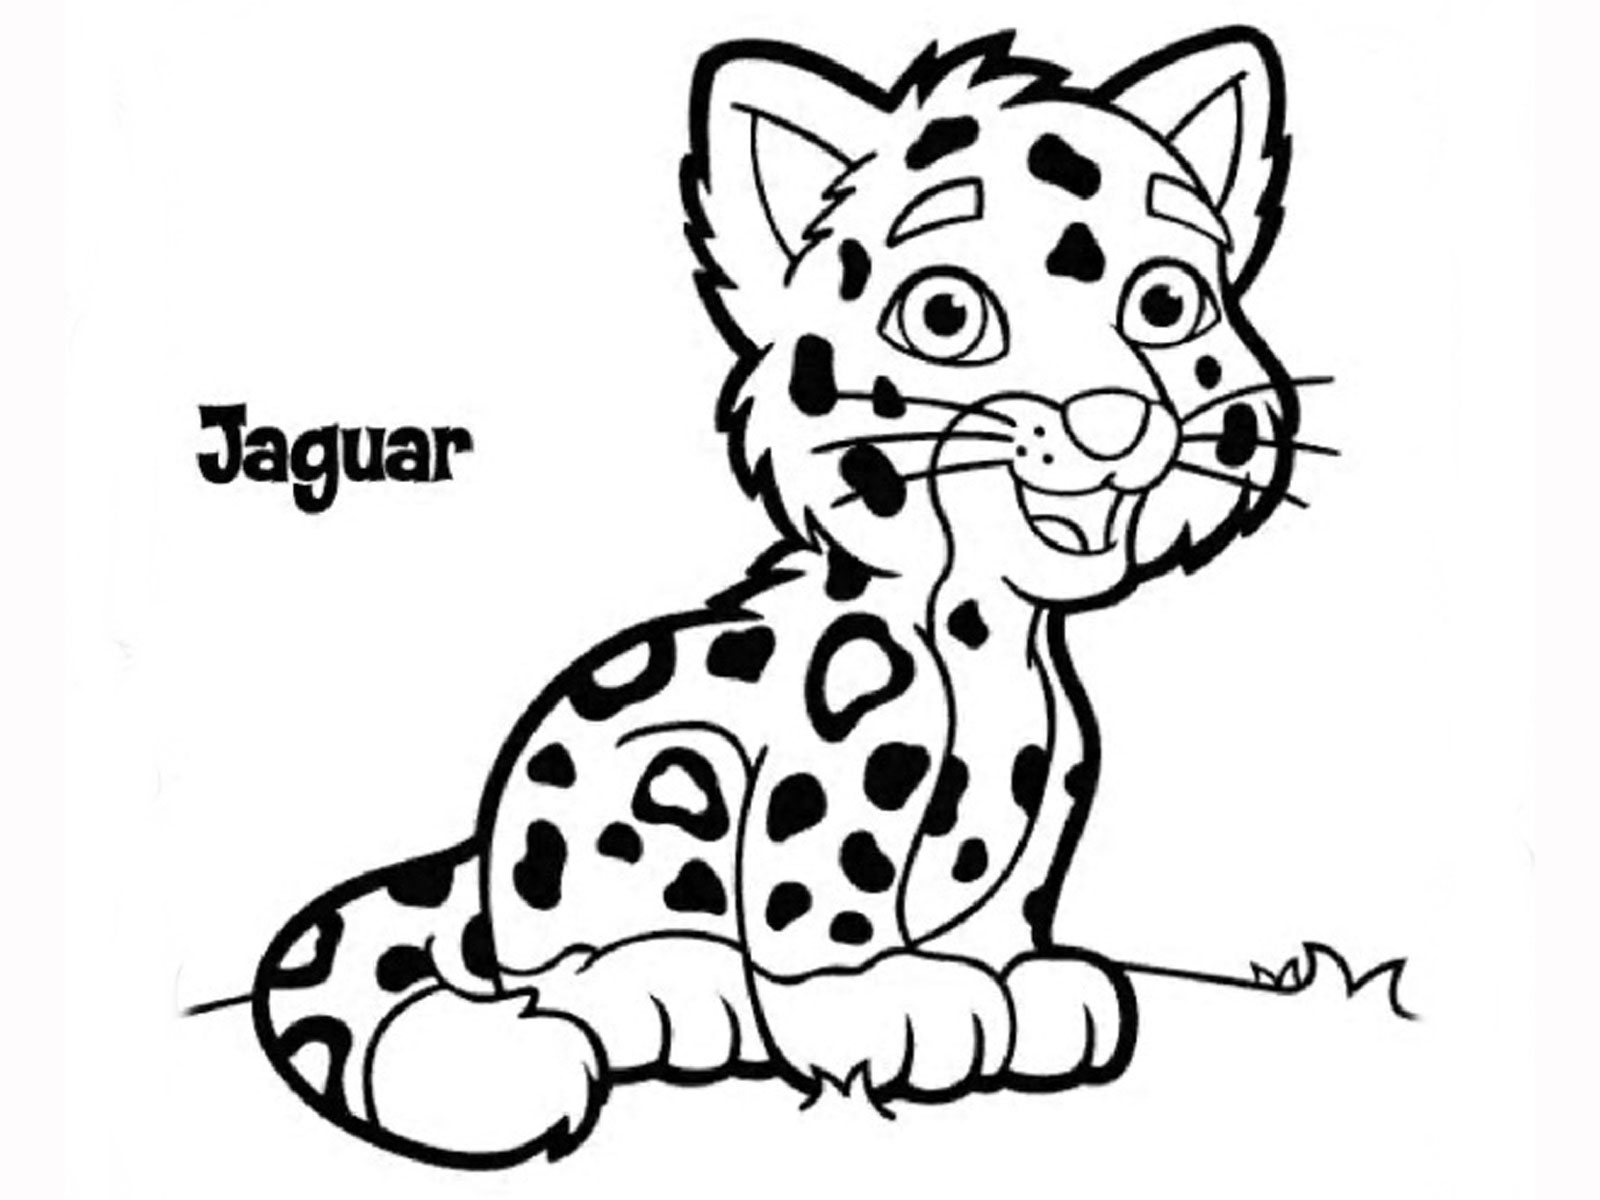 jaguar coloring pages jaguar coloring pages to download and print for free coloring jaguar pages